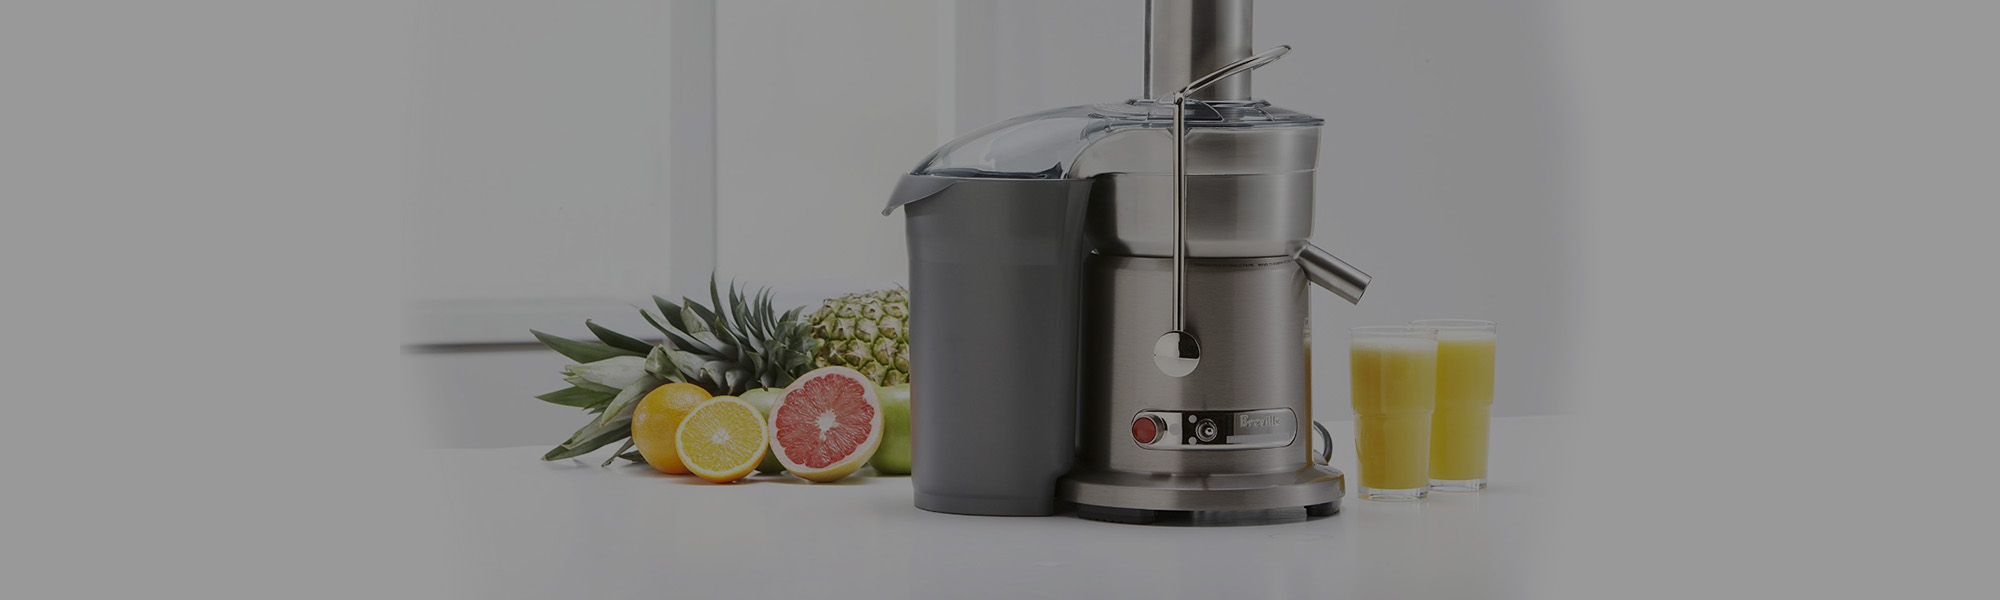 VonShef Professional<br>Wide Mouth Whole Fruit Juicer